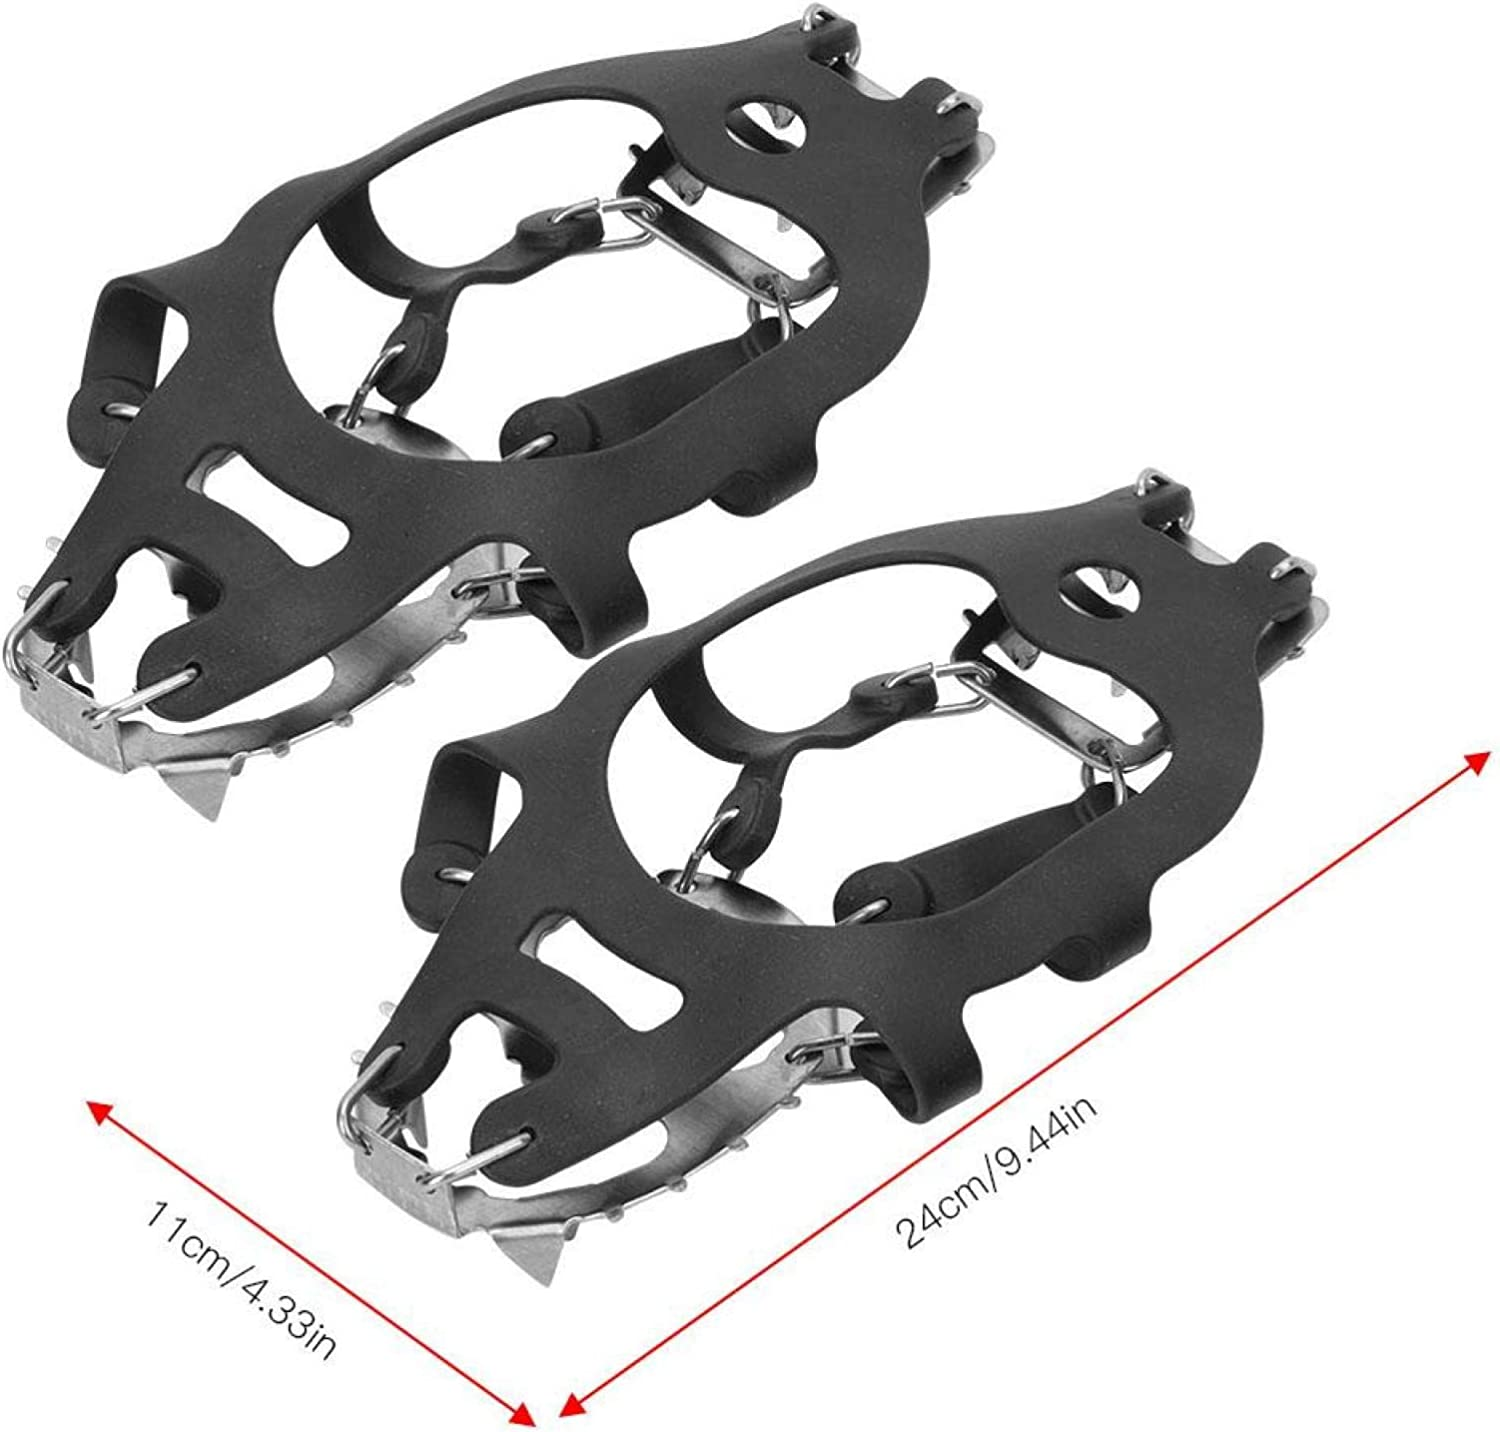 Santing 18 Teeth 1 Pair Slip R Mountain for Crampons Spikes shipfree Mud Max 82% OFF